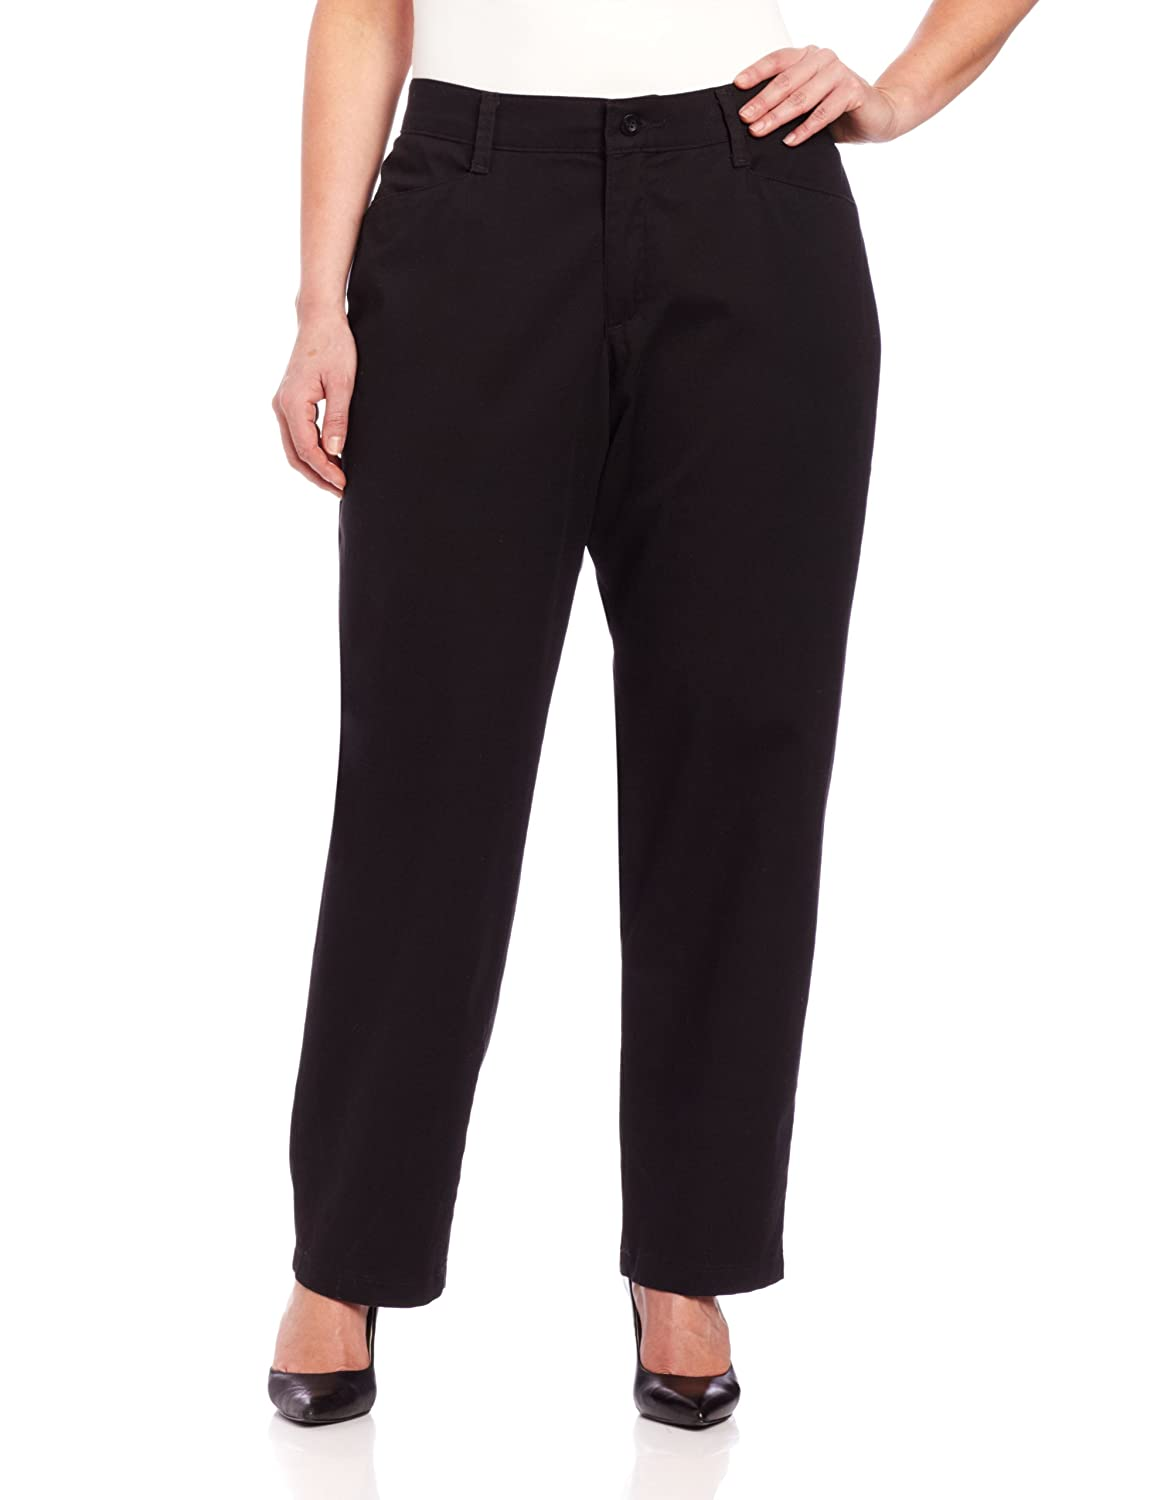 LEE Women's Plus Size Relaxed Fit Plain Front Straight-Leg Pant 30w)